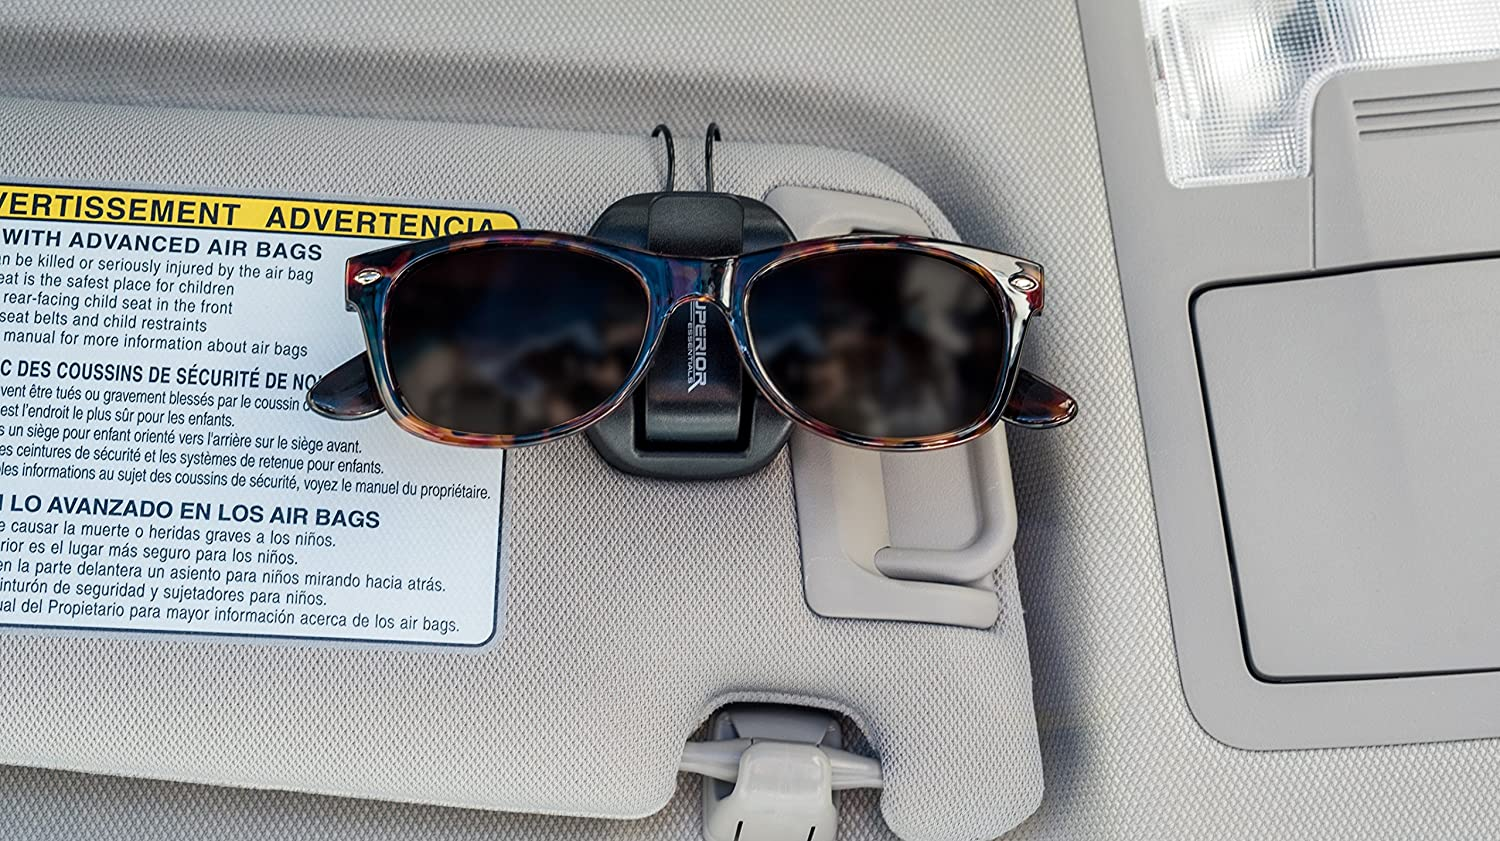 f7fa109ae14 Amazon.com  Superior Essentials Sunglasses Holder for Sun Visor Air Vent -  Conveniently Holds Sunglasses - Easy One Handed Operation  Automotive